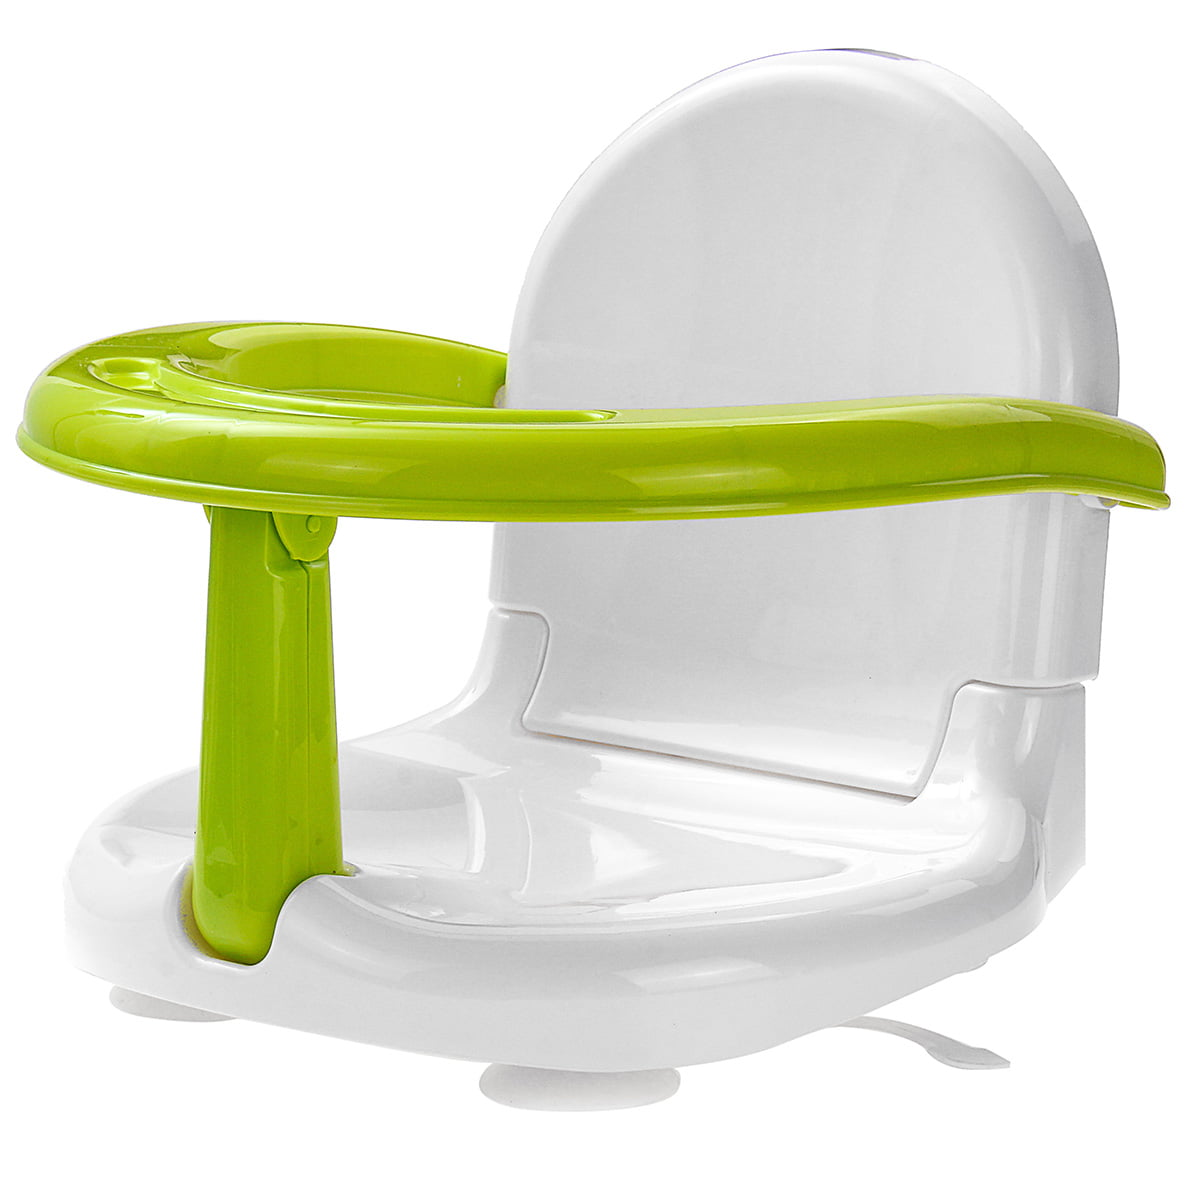 Foldable Infant Baby Bath Seat Safety Bath Support Seat